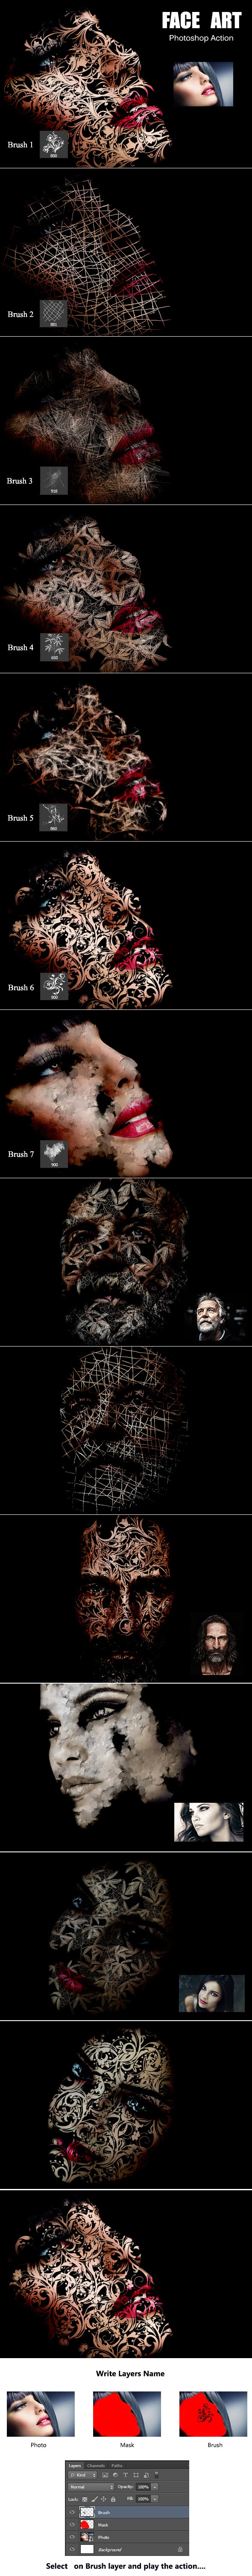 Face Art - Photoshop Add-ons